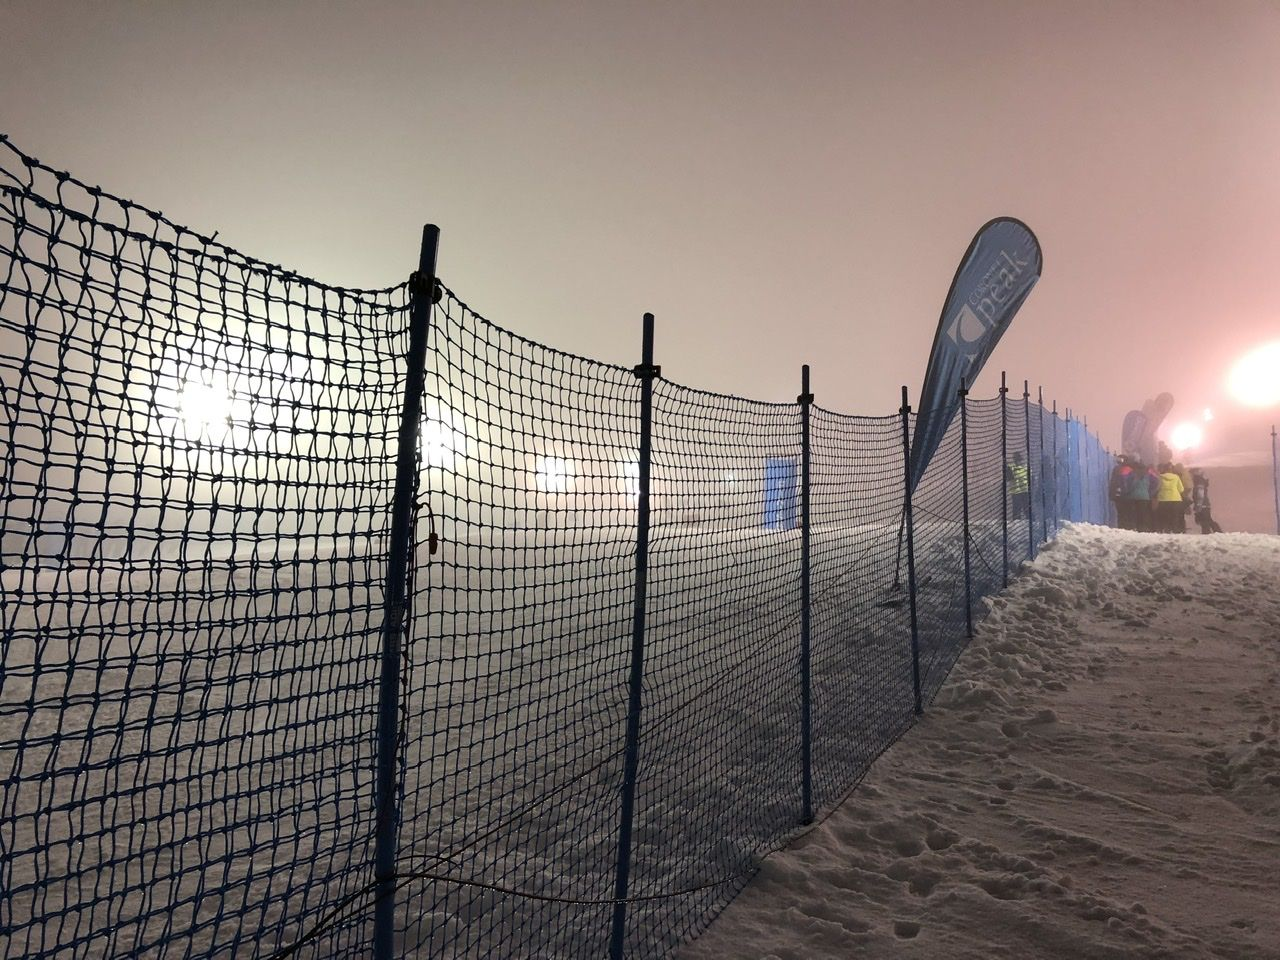 Winter Games in the clouds